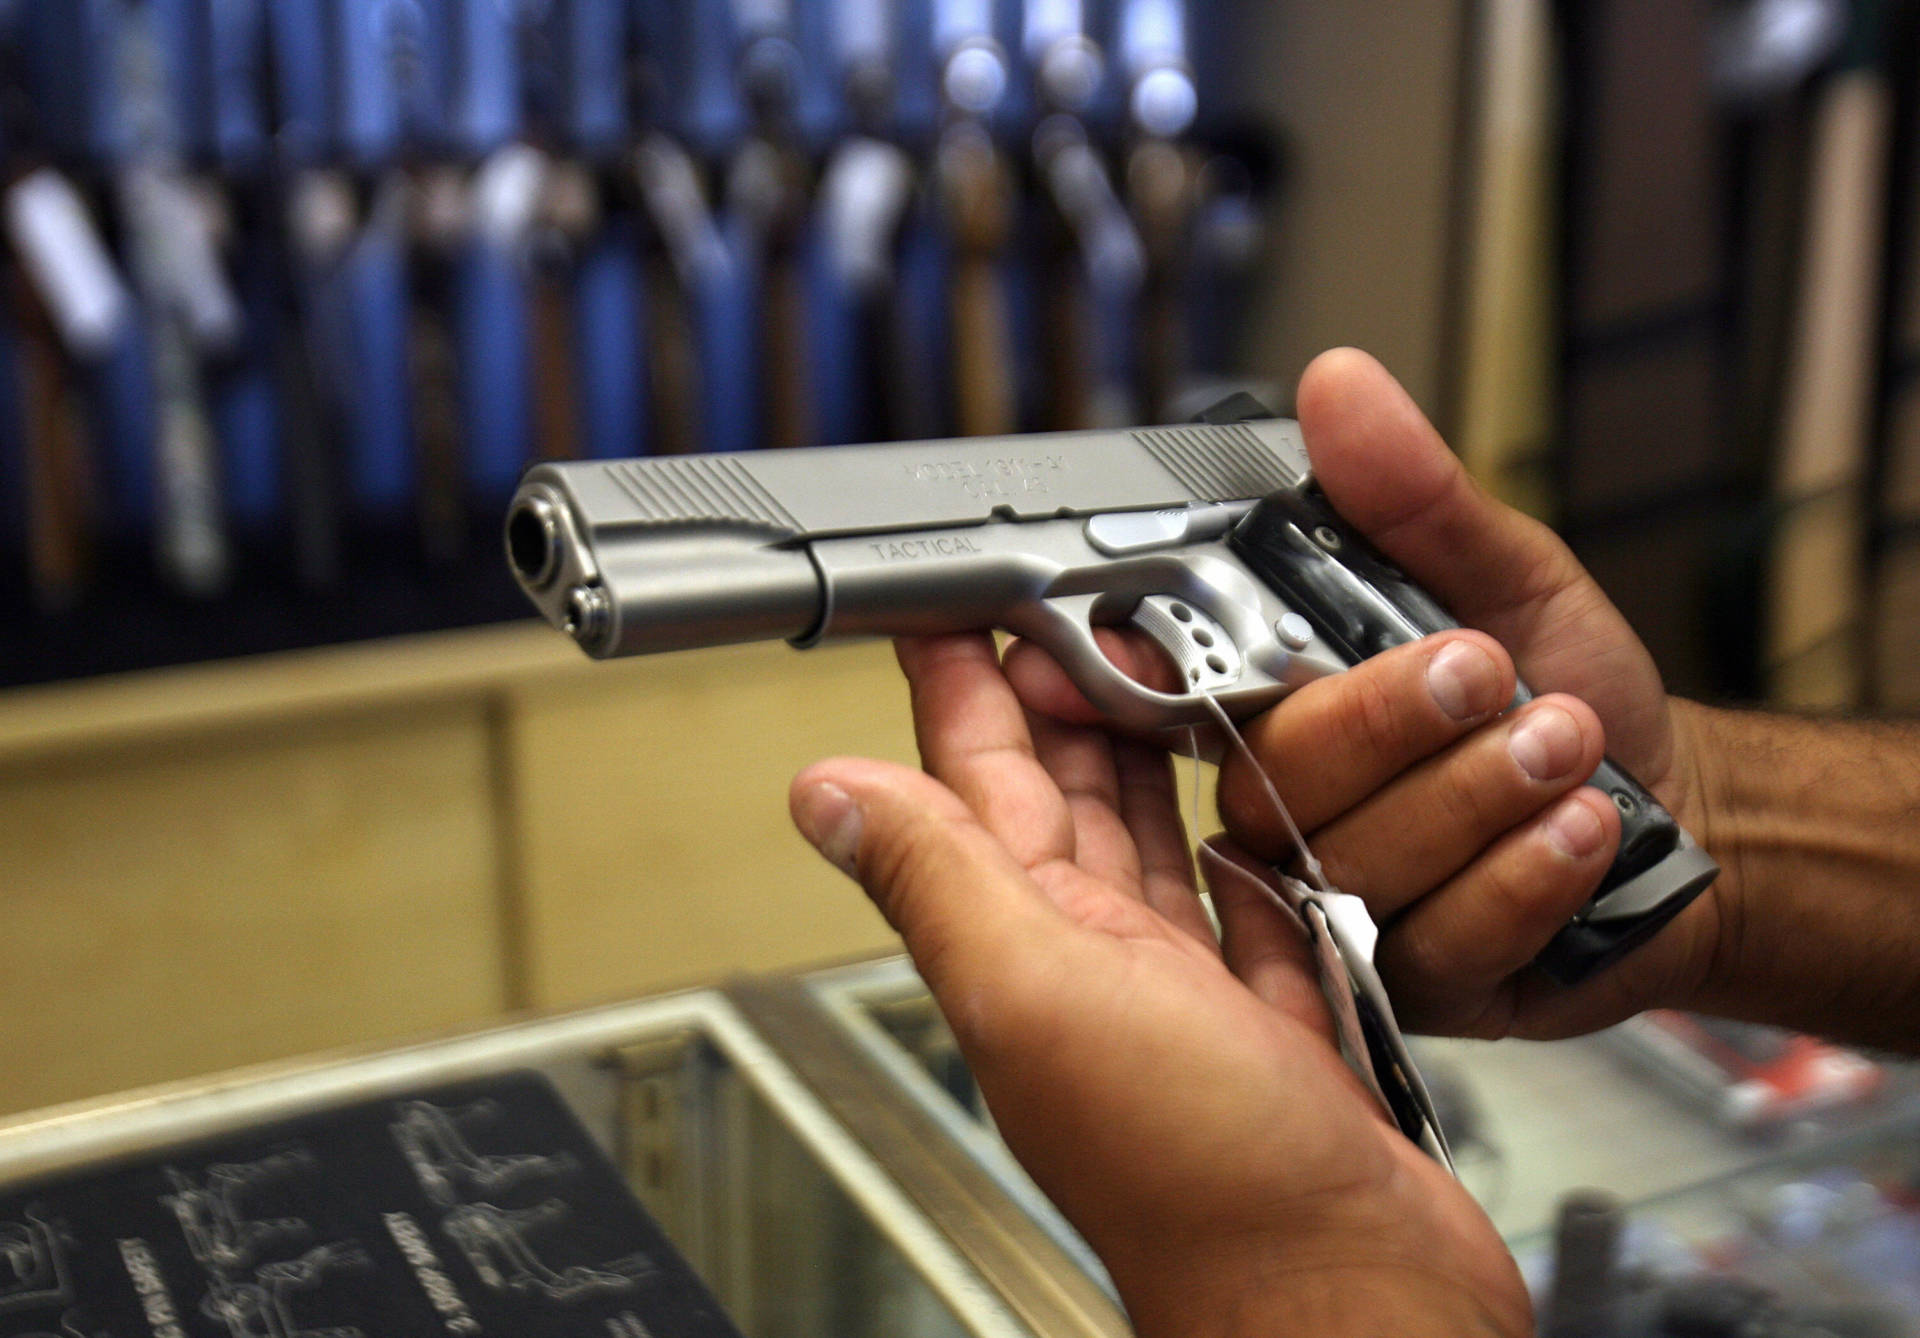 Glendale, UNITED STATES: A man chooses a gun at the Gun Gallery in Glendale, California, 18 April 2007